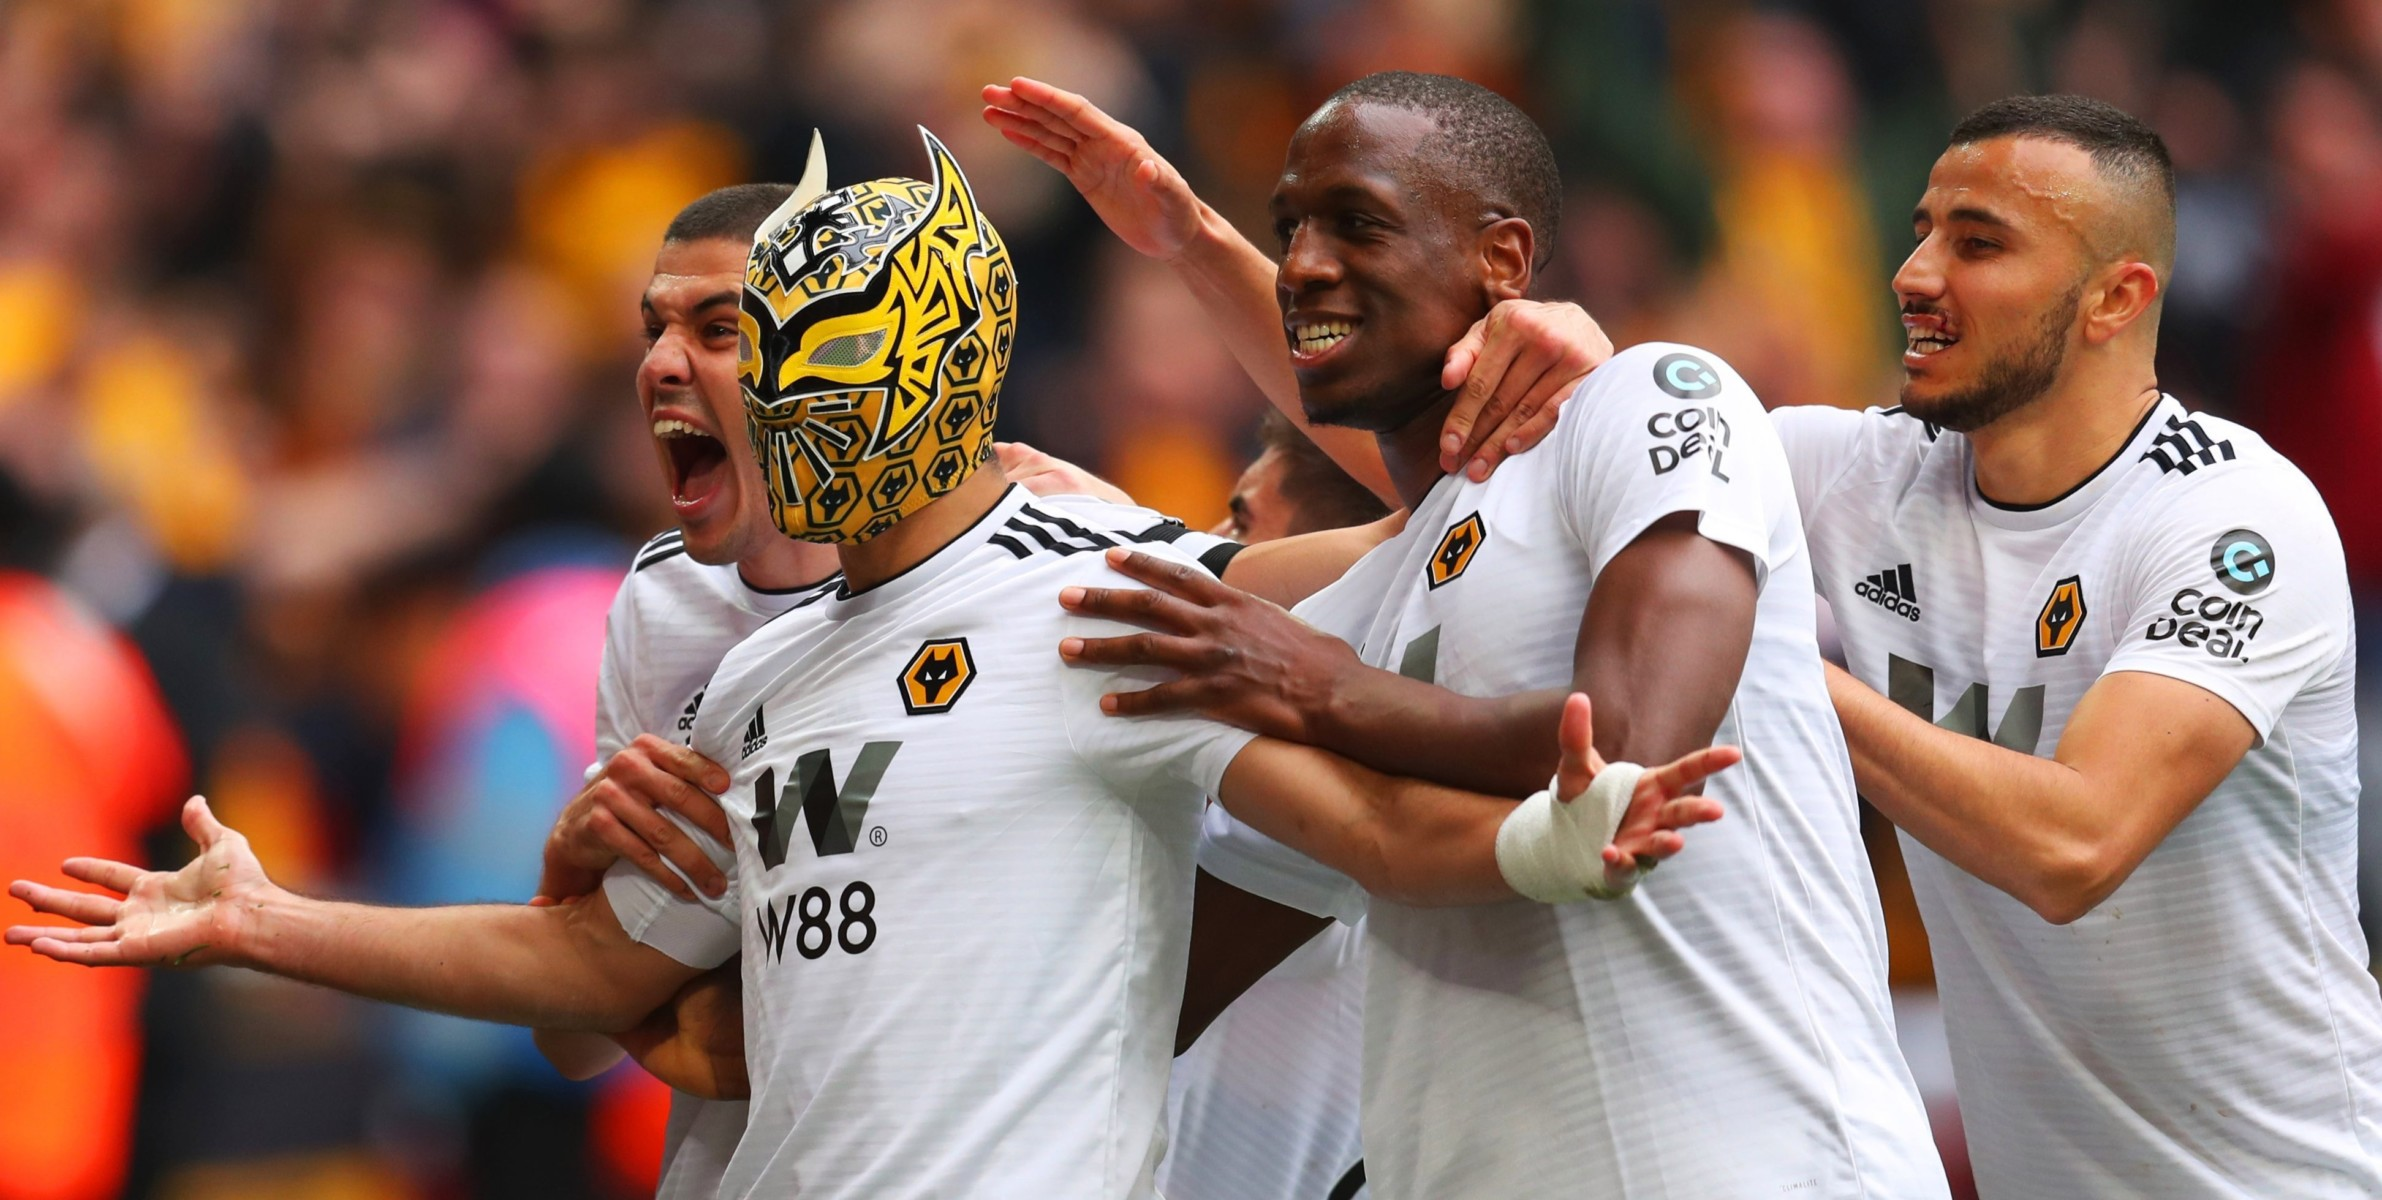 Wolves striker Raul Jimenez has famously used masks to salute some of his goals